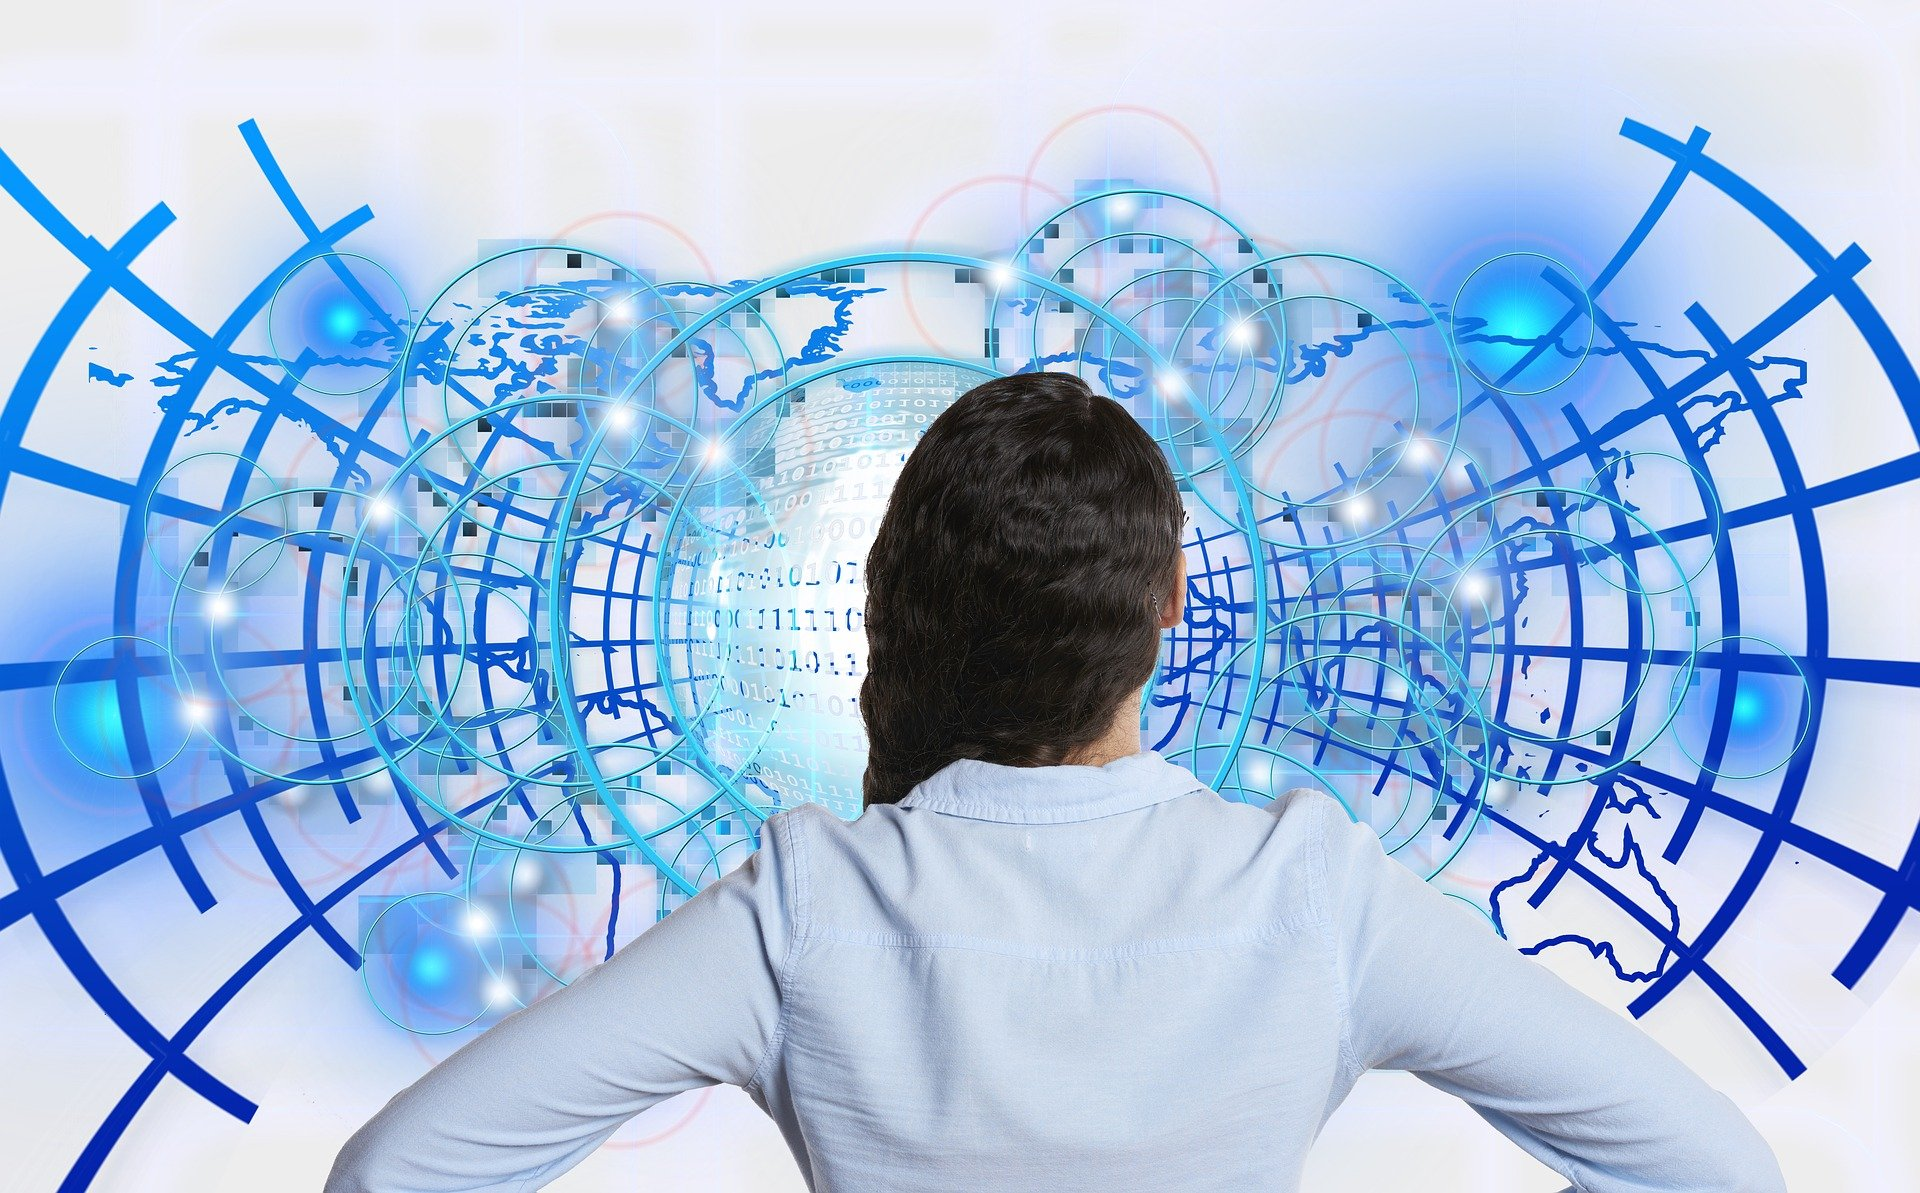 Women in Cybersecurity: Why are there so few female CISOs and how do we change this?